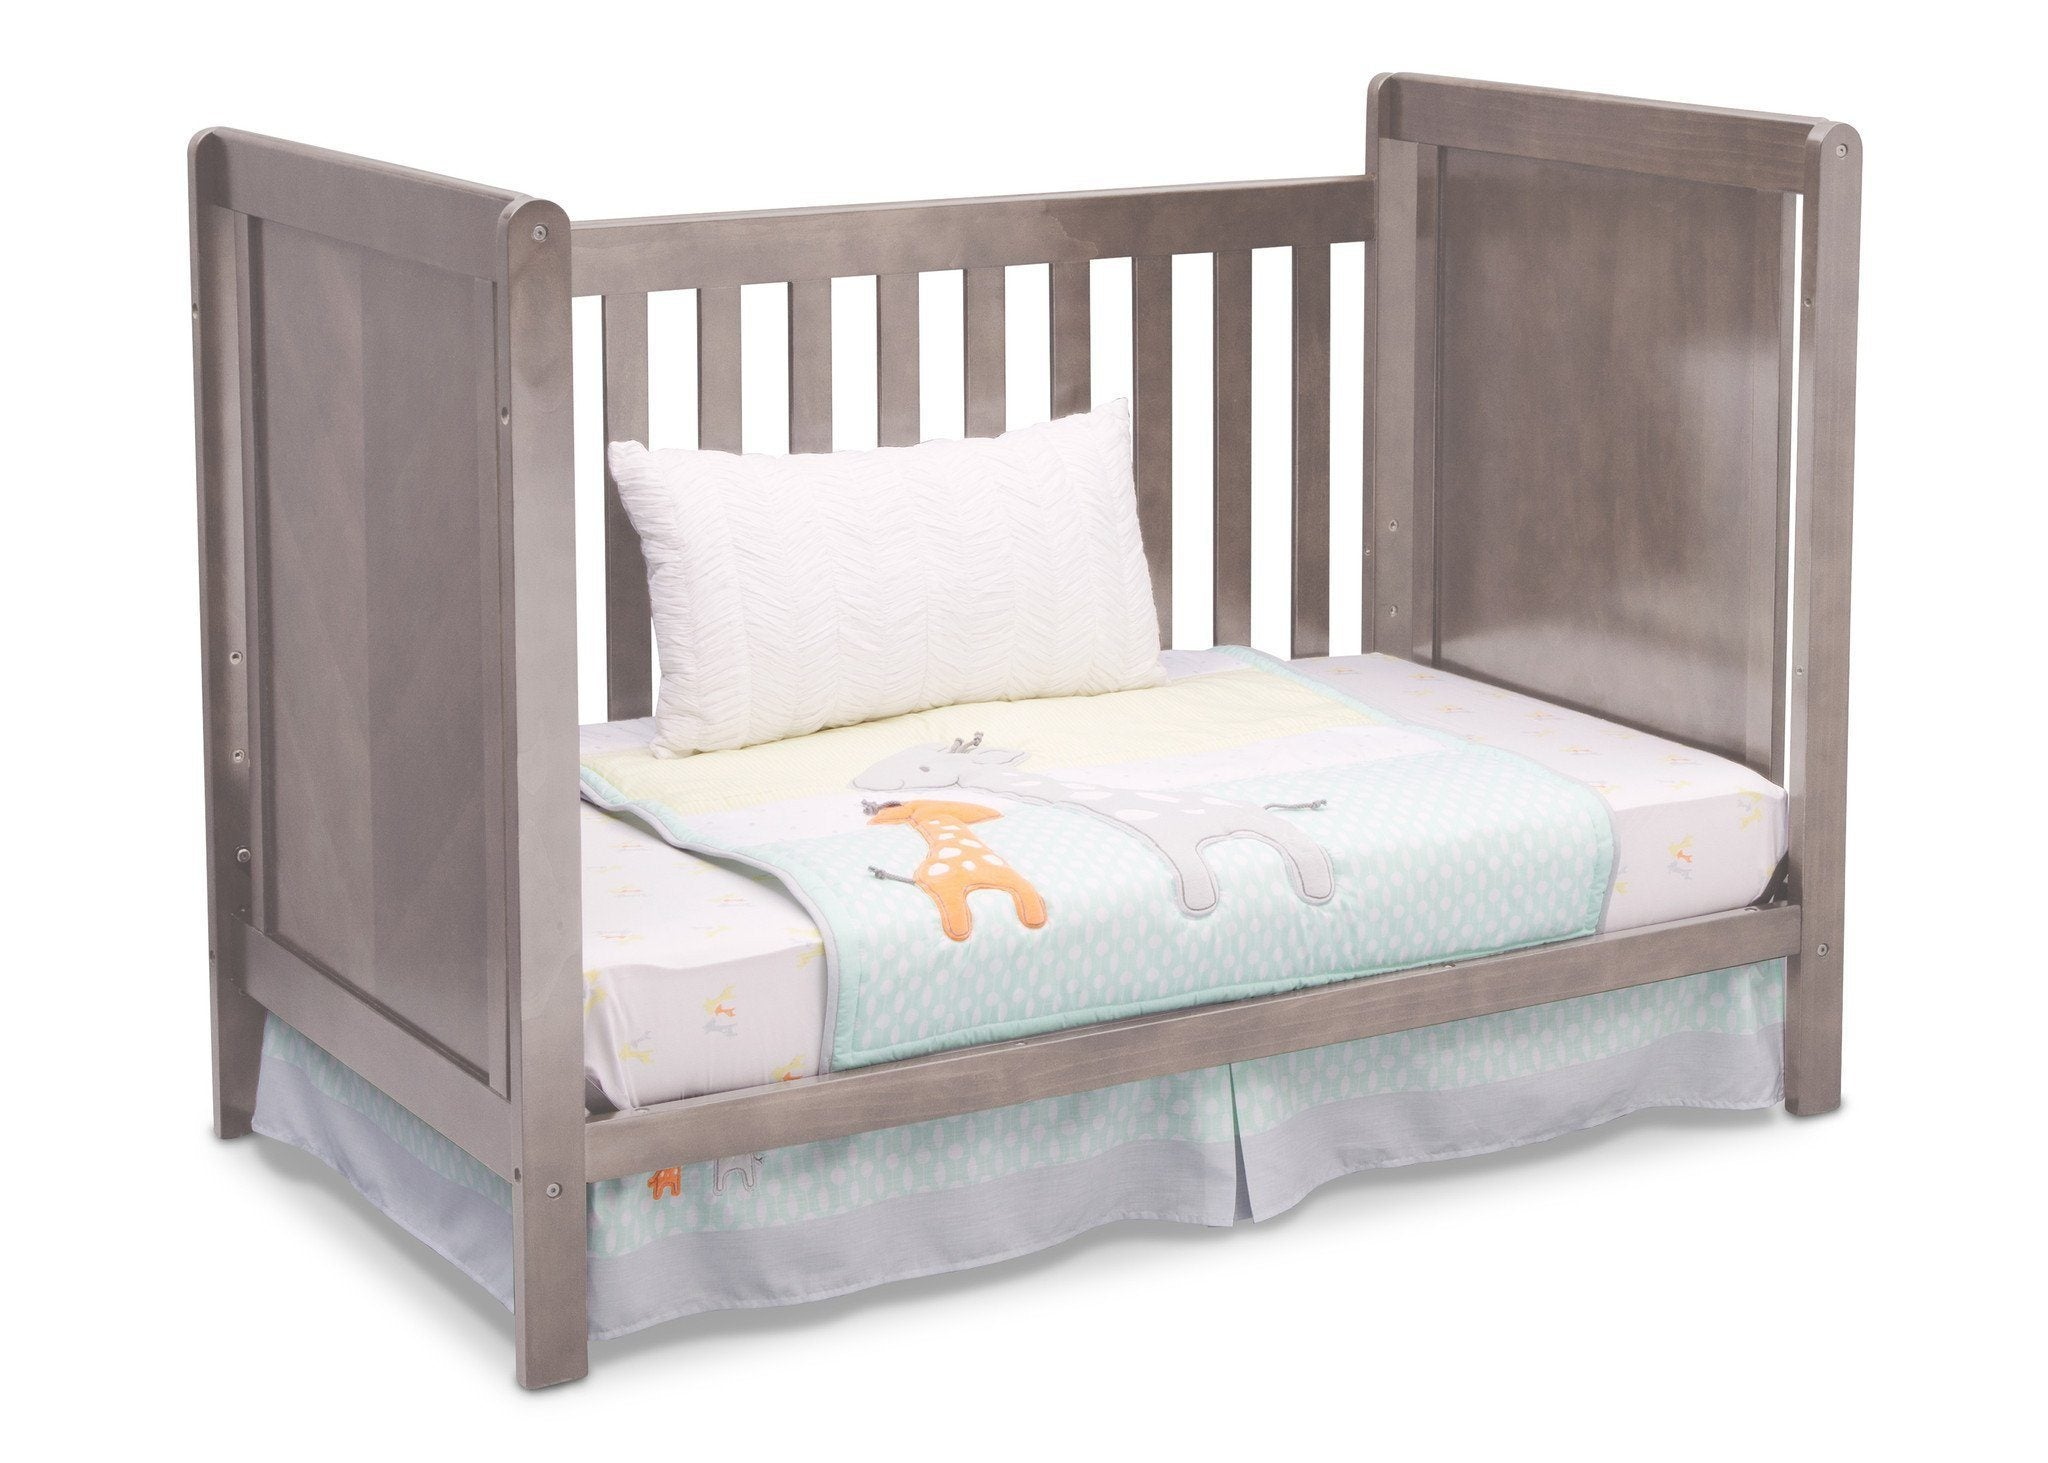 Delta Children Stained Grey (054) Cypress 4-in-1 Crib, Day Bed Conversion a3a